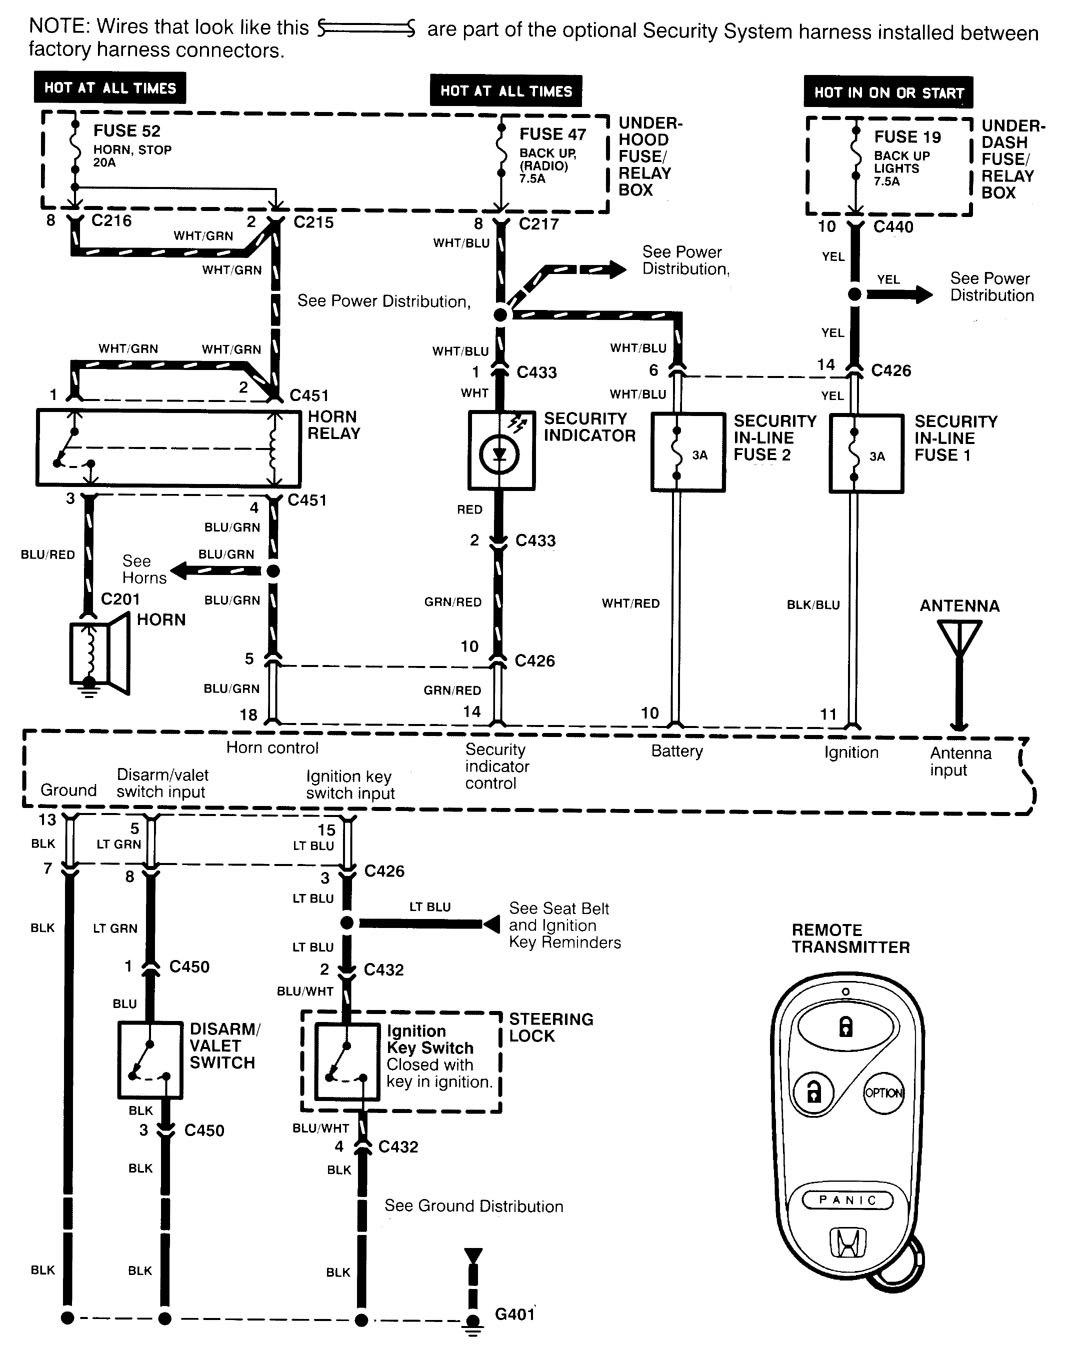 01 Integra Fuse Diagram Wiring Schematic